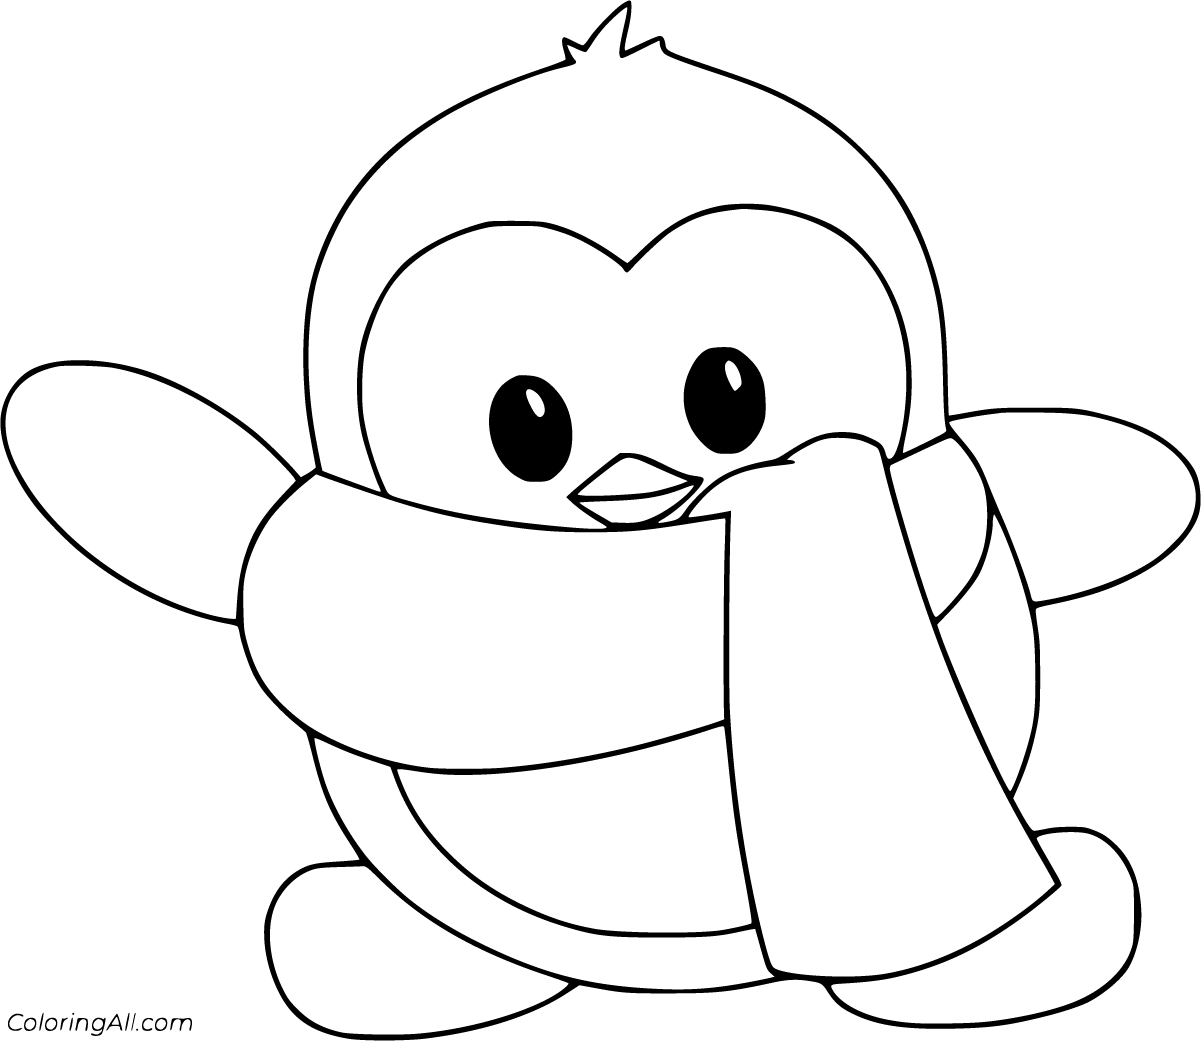 penguin colouring sheets penguin coloring pages coloringall penguin colouring sheets